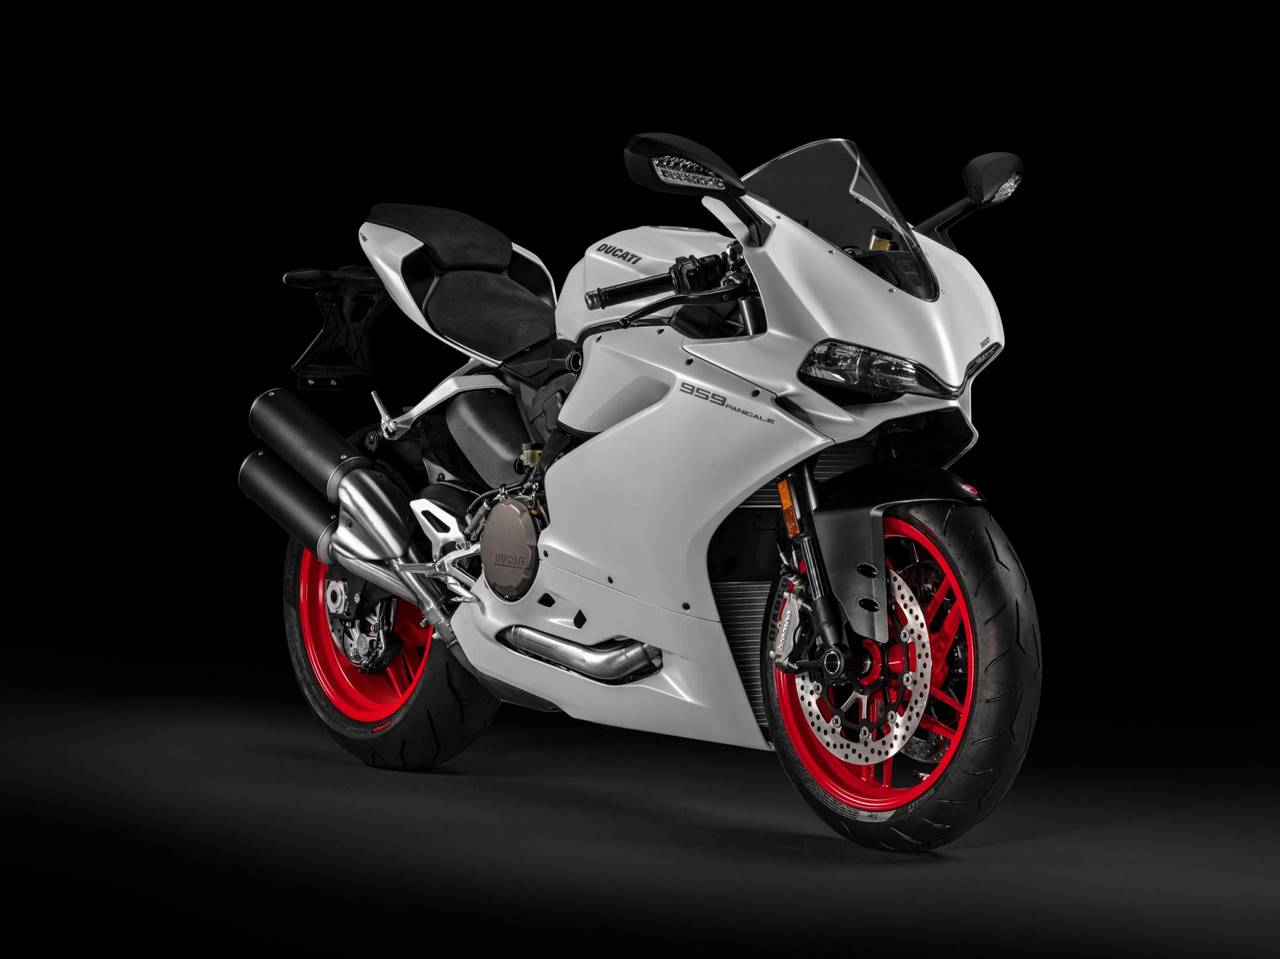 2016-Ducati-Panigale-959-official-image-white - CarBlogIndia